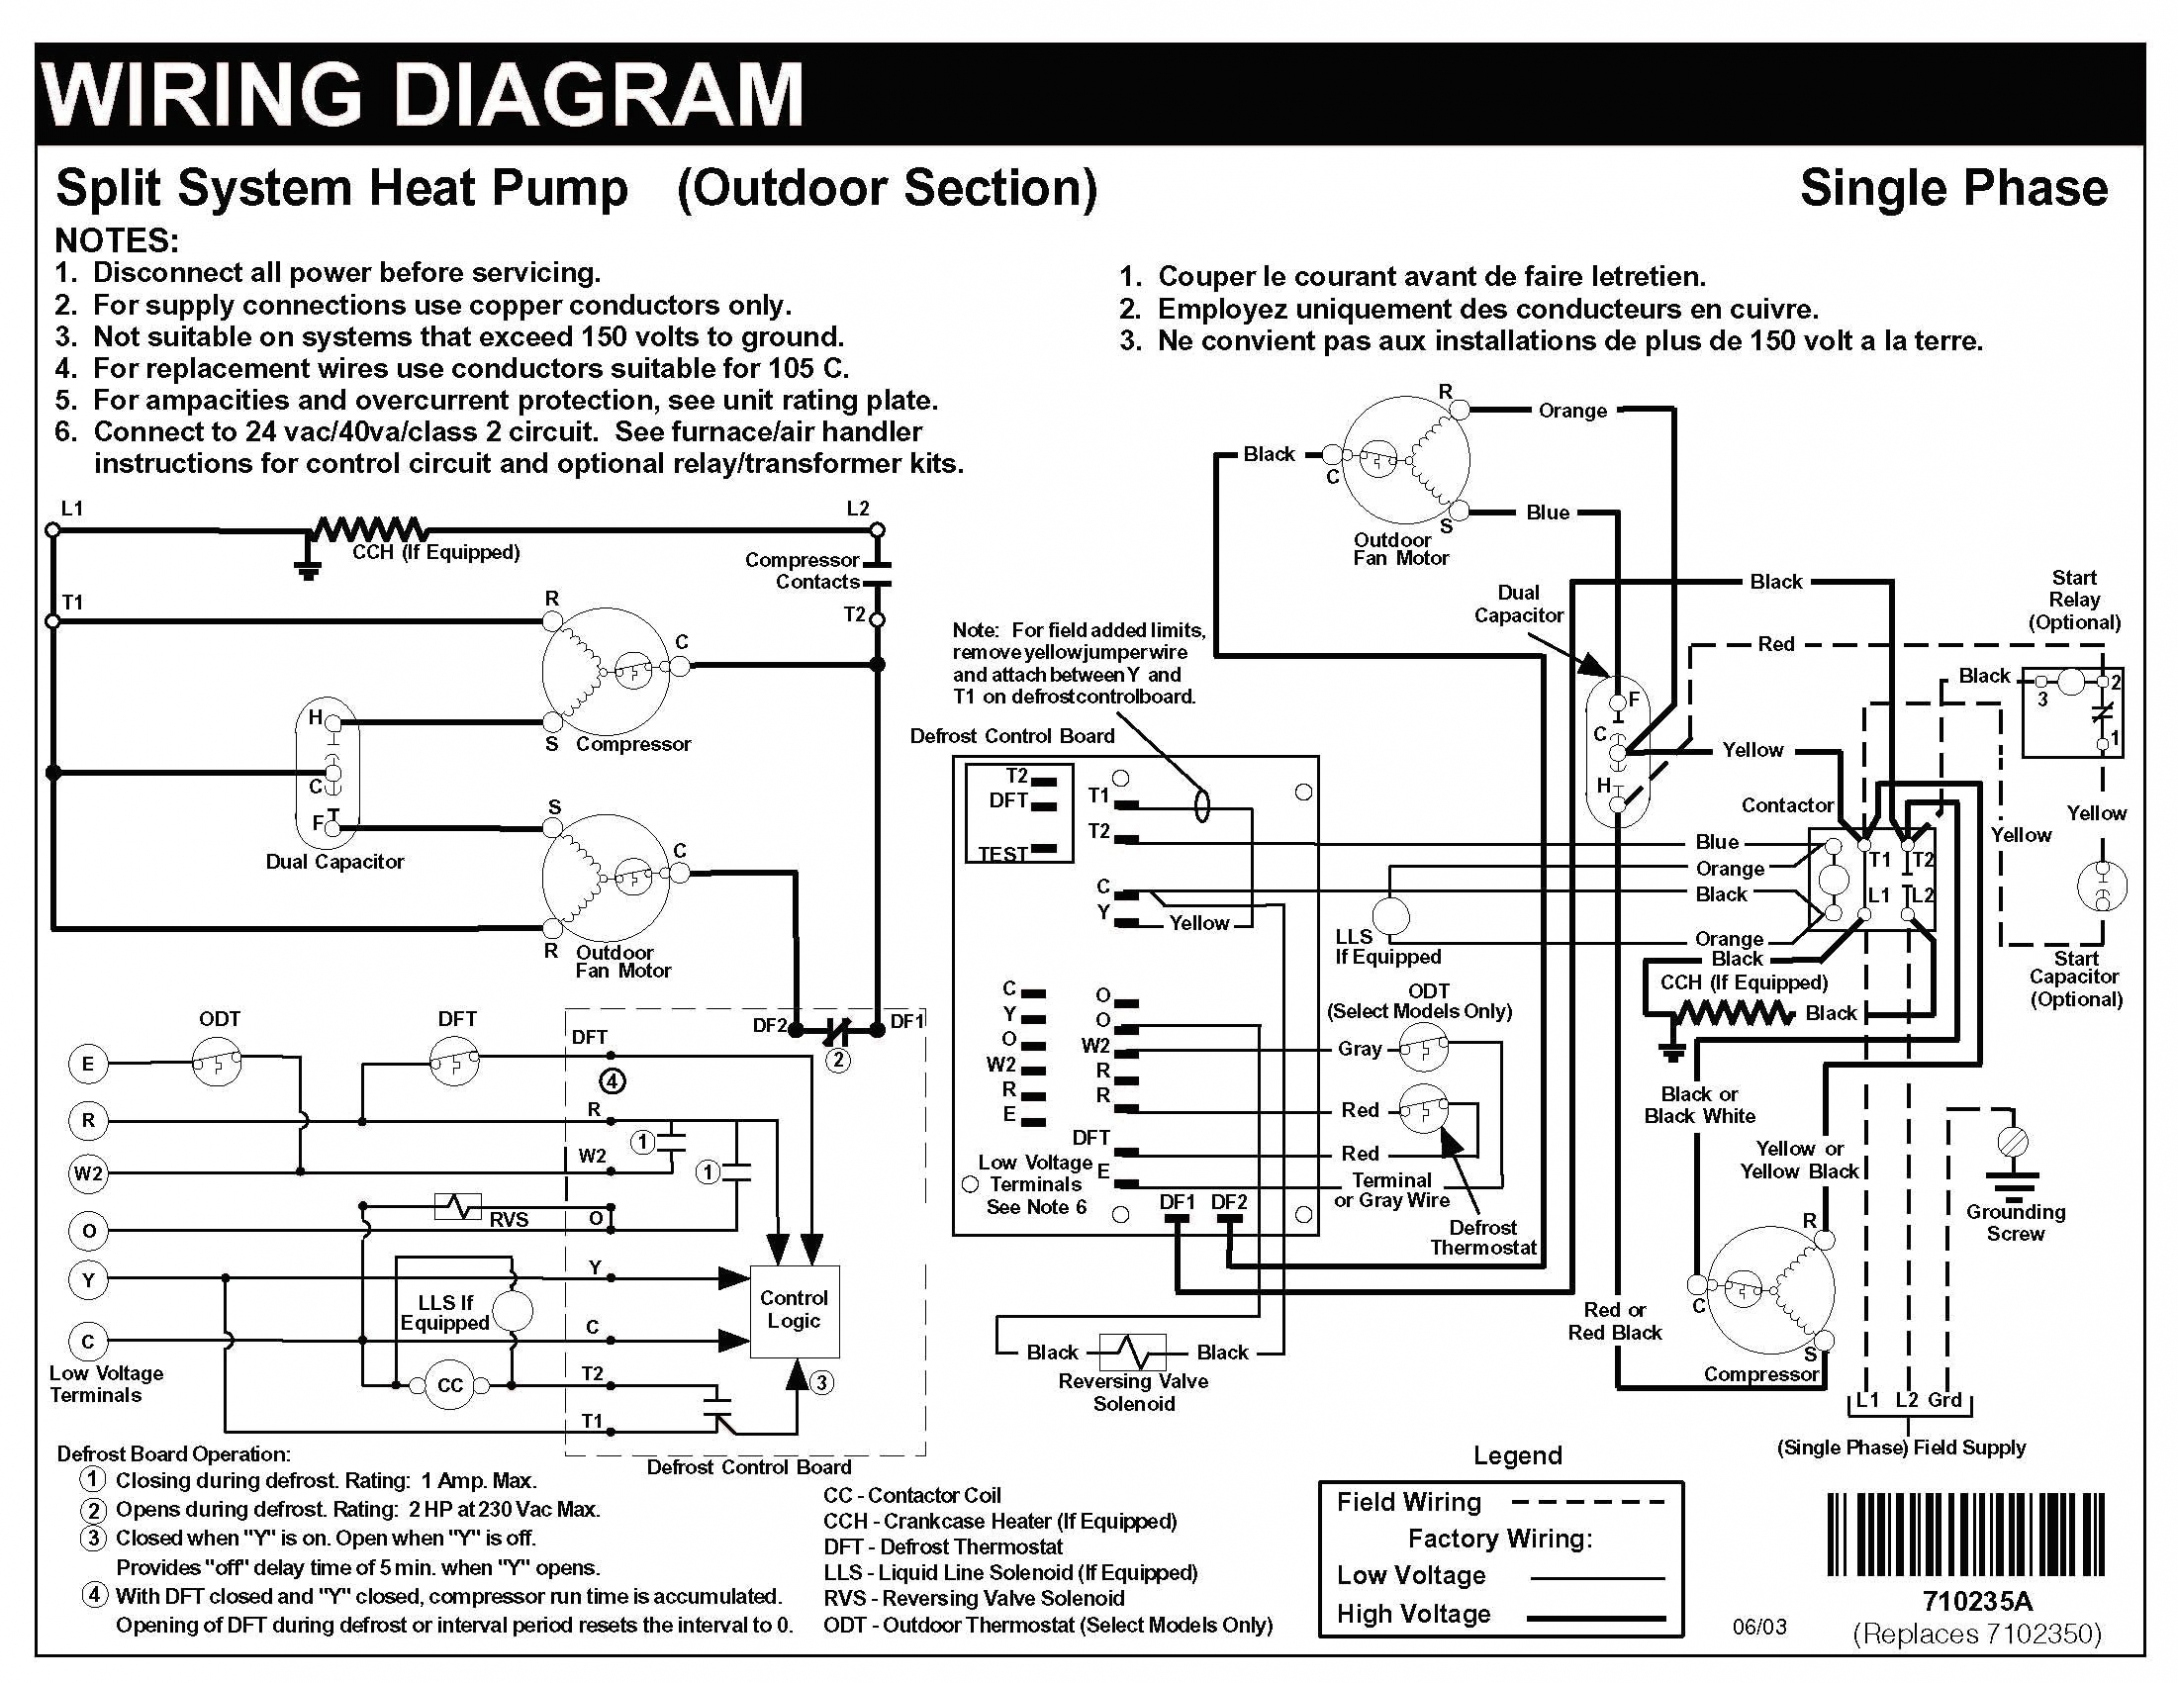 Wiring Diagram Hvac Thermostat Fresh Nest Thermostat Wiring Diagram - Nest Thermostat Wiring Diagram For Heat Pump